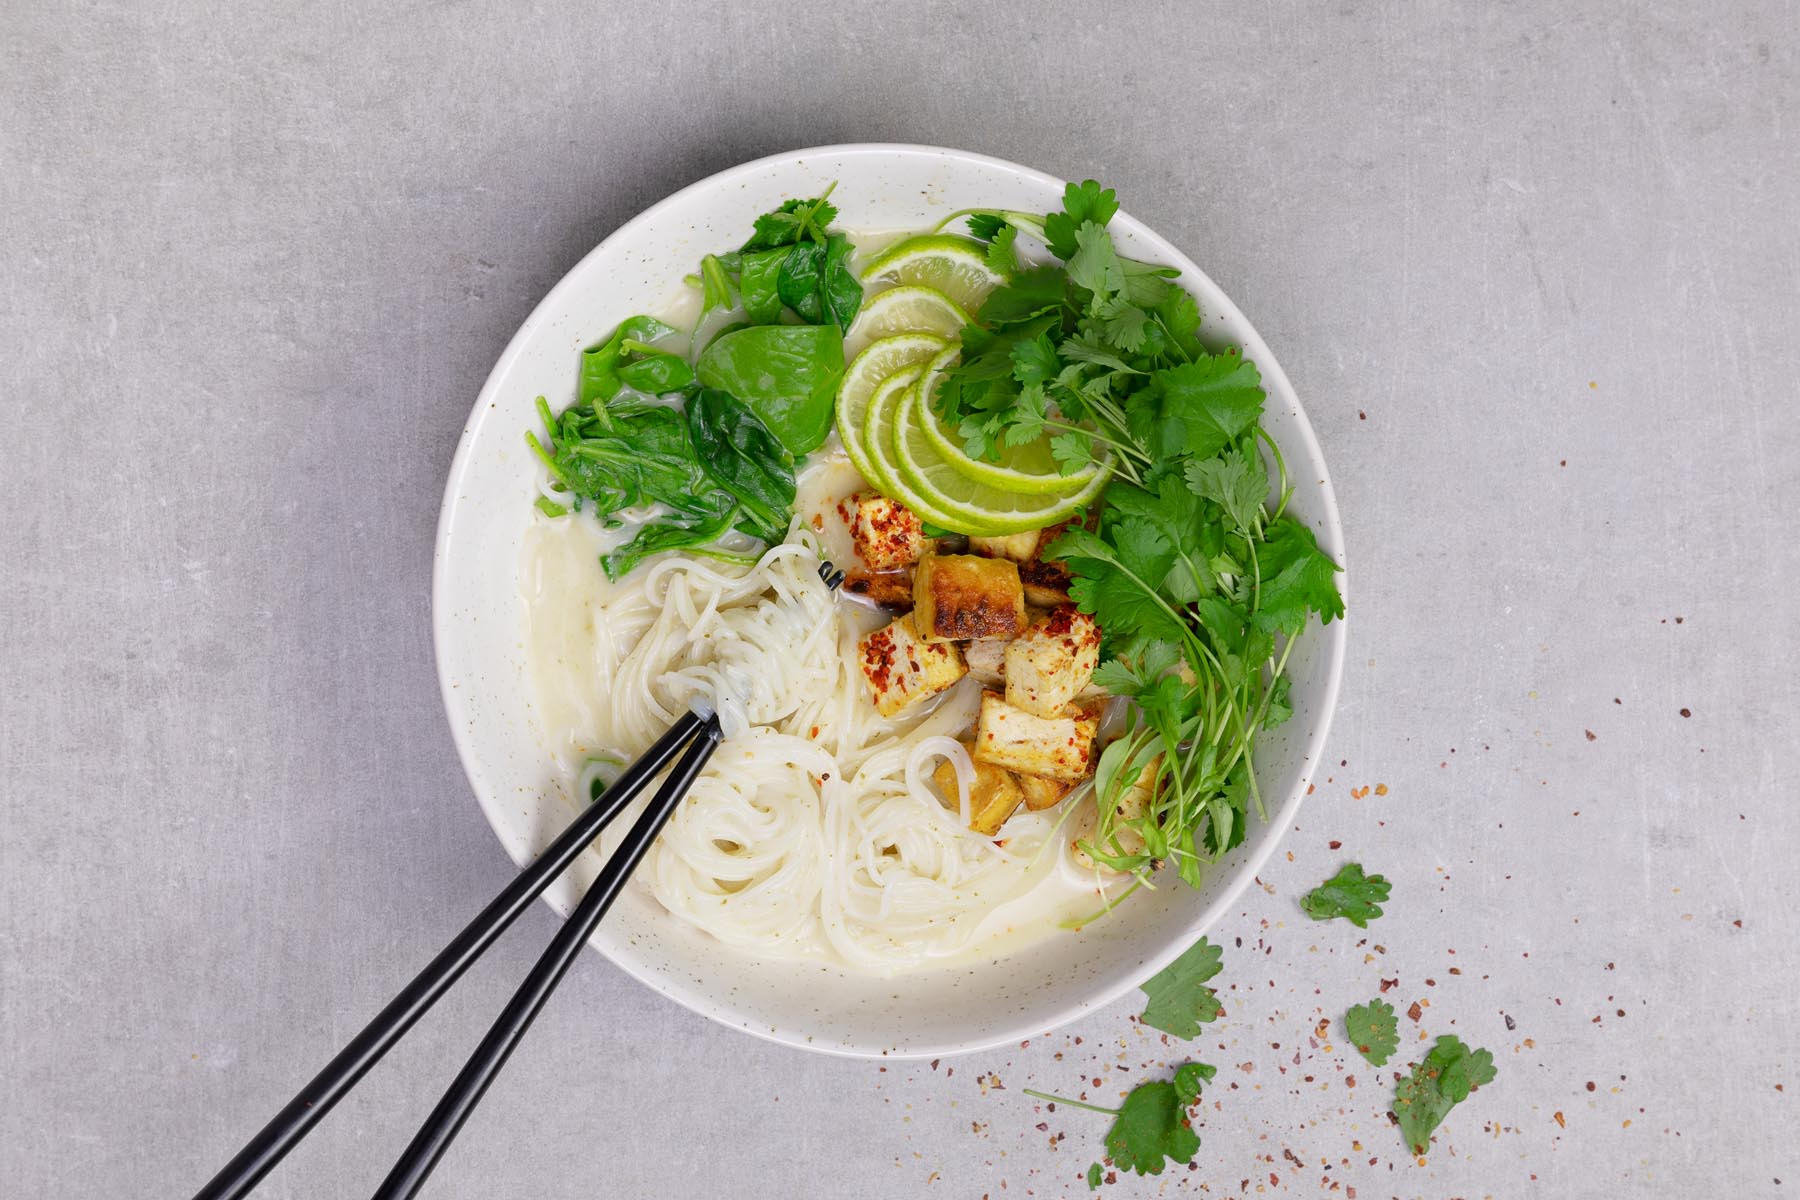 Fried tofu and green curry sit atop a bowl of rice noodles.